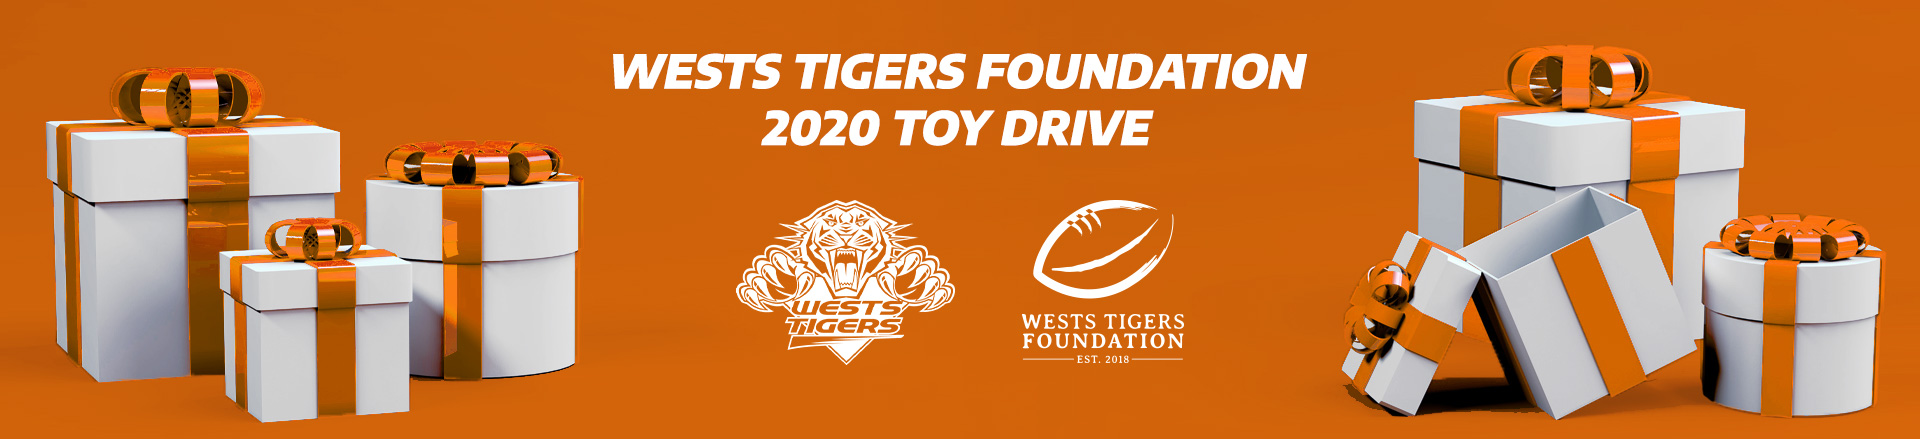 - Liverpool Hospital - Wests Tigers Toy Appeal